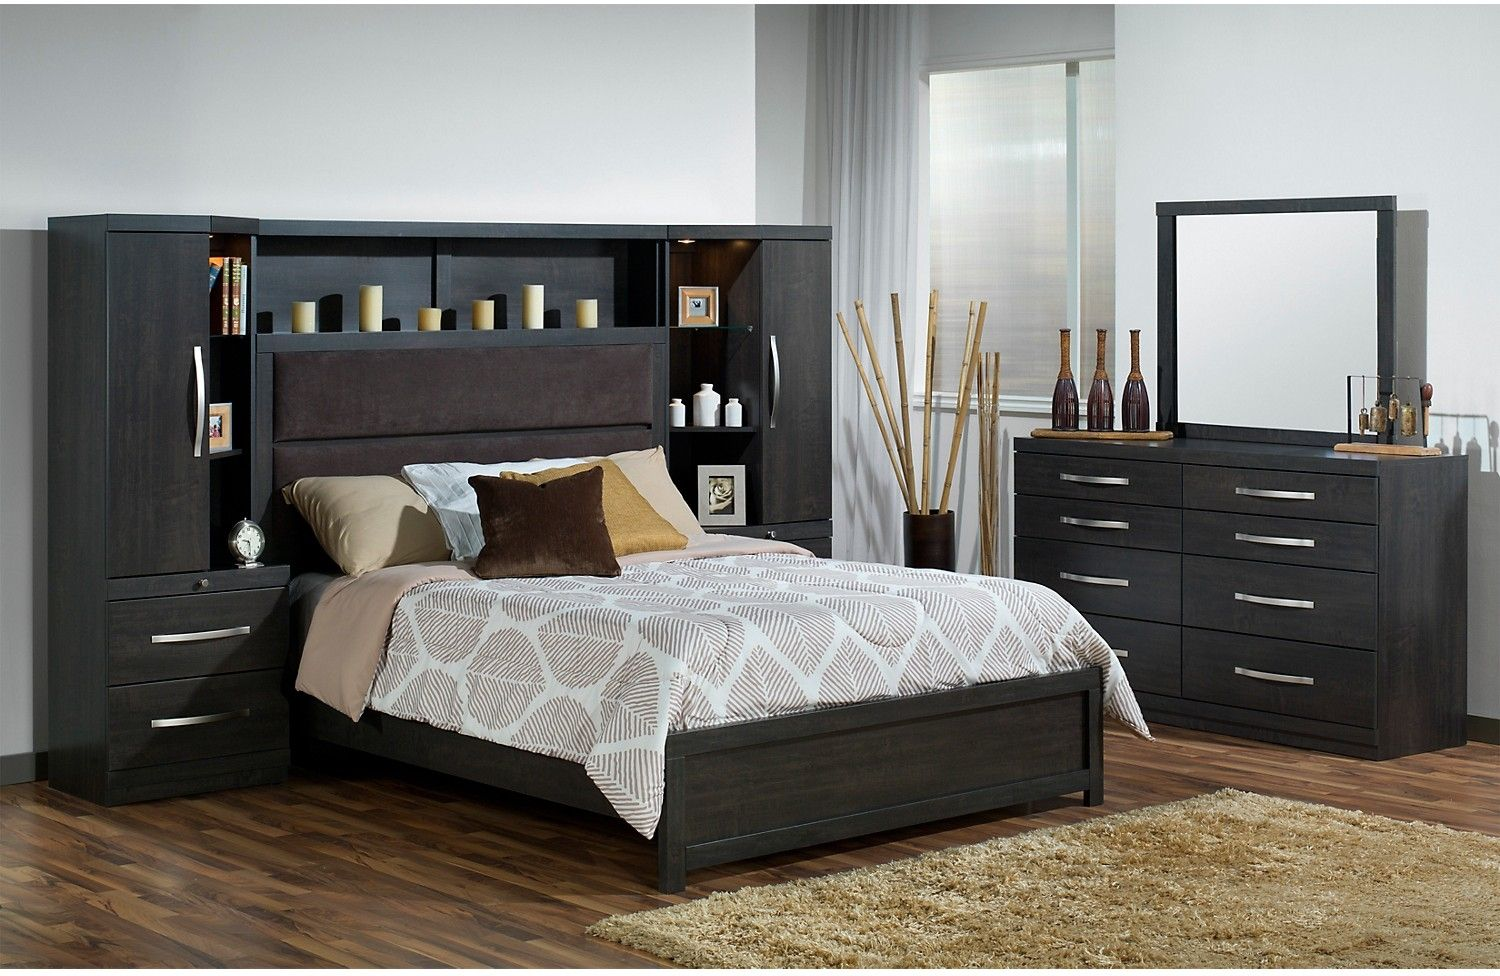 Willowdale King 5-Piece Pier Bedroom Package | Bedrooms, Bricks and ...